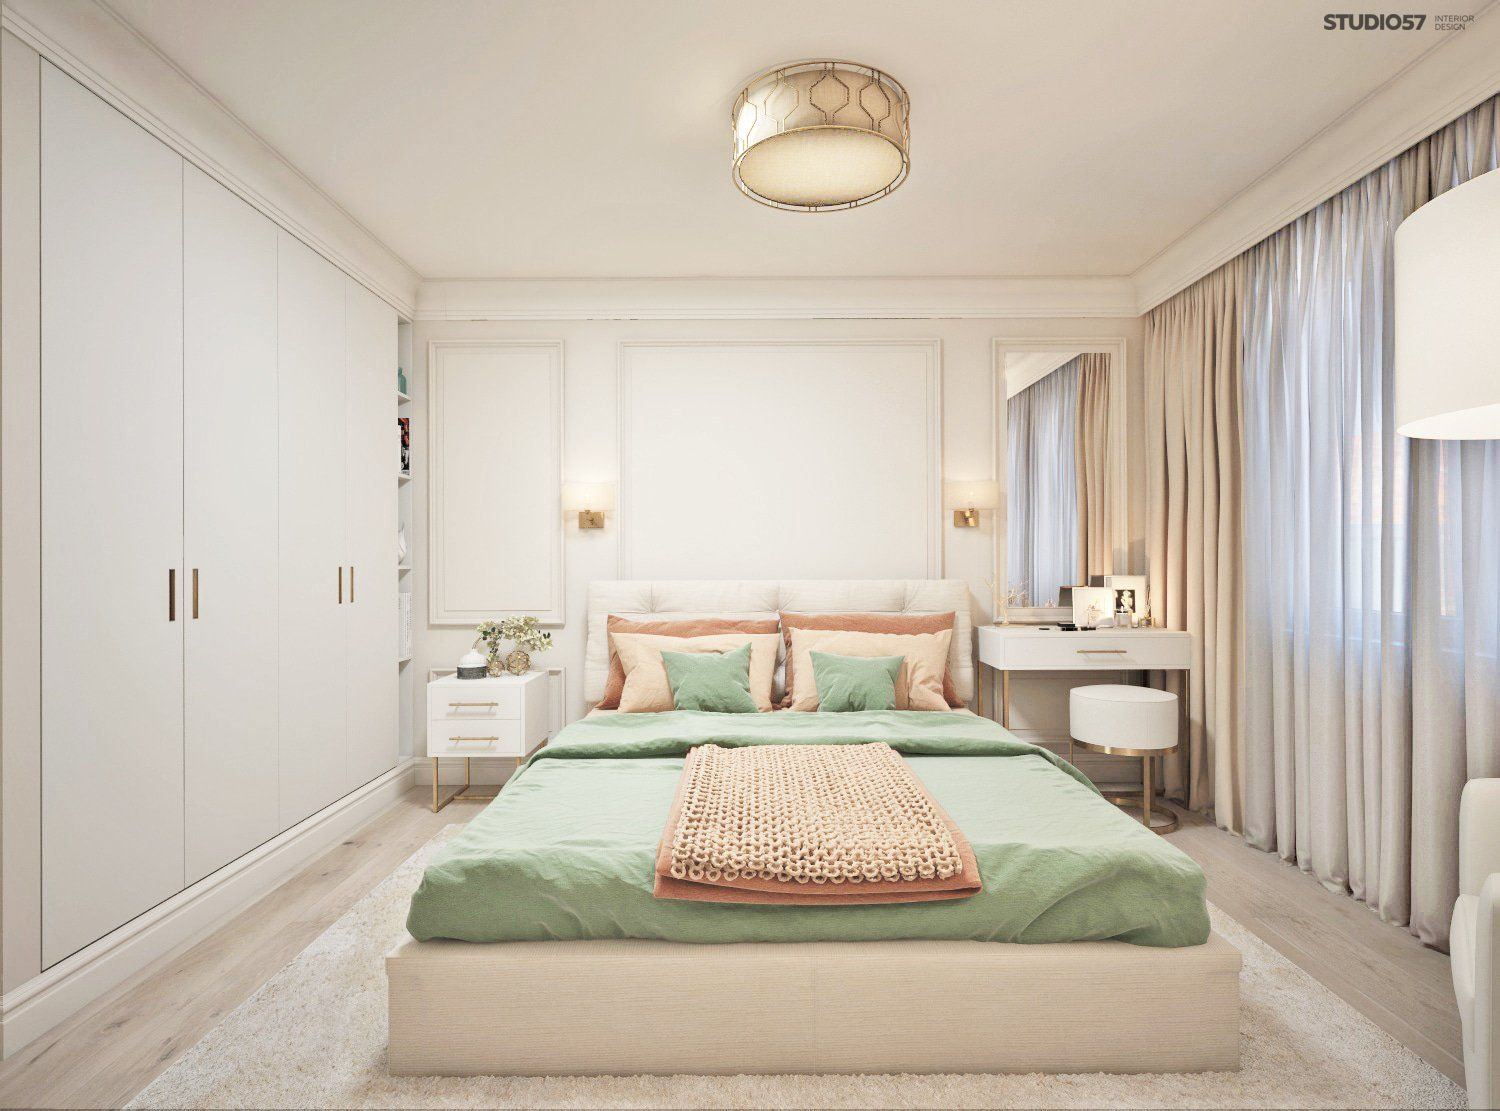 Bedroom in light colors picture